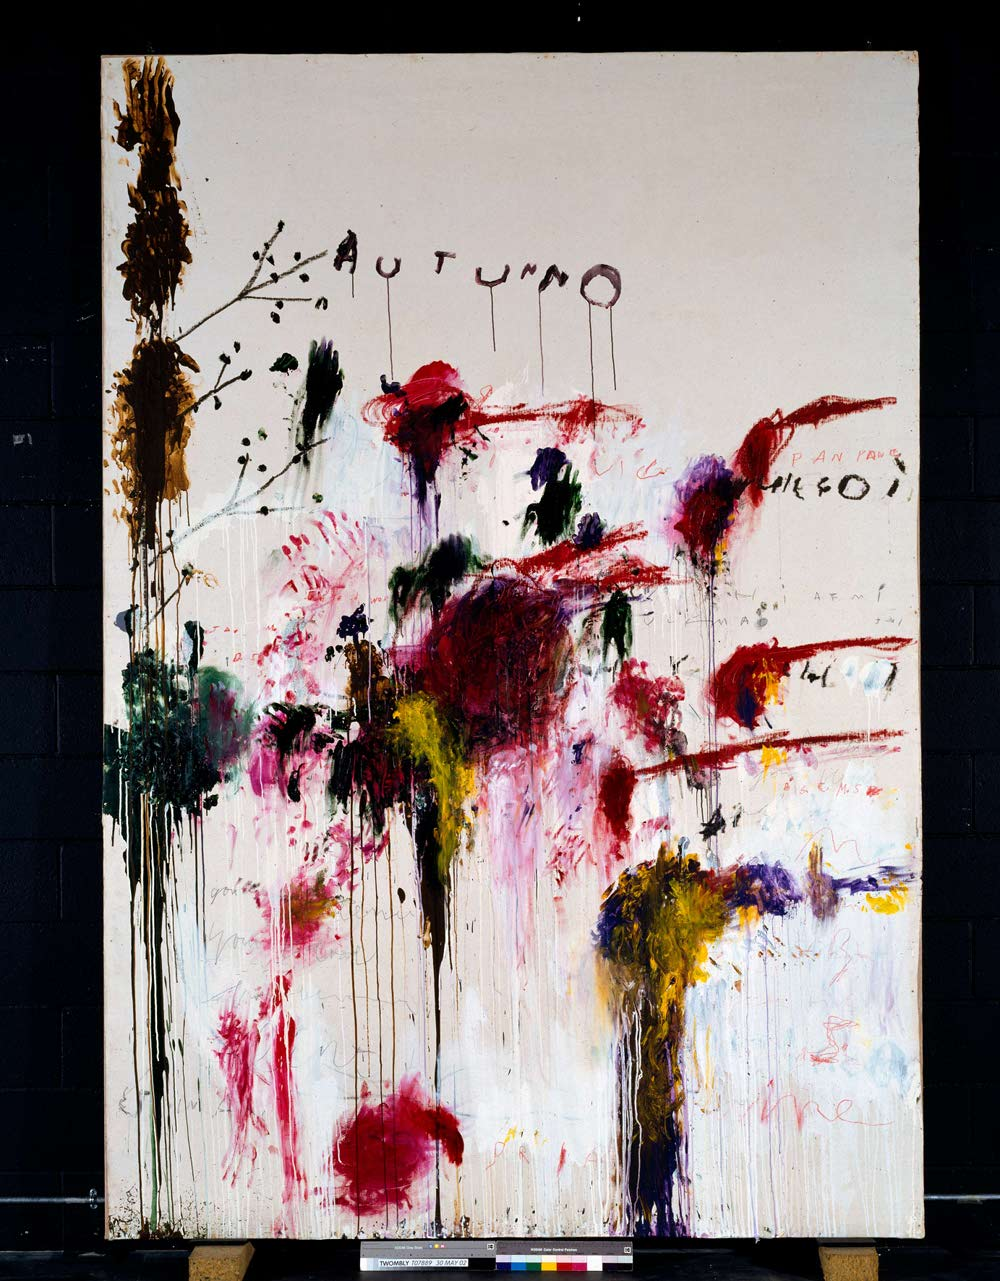 Cy Twombly, Quattro Stagioni: Autunno, 1993-5, Acrylic, oil, crayon and pencil on canvas, 3230 x 2254 x 67mm. Tate: Purchased with assistance from the American Fund for the Tate Gallery and Tate Members 2002, ©Tate, London, 2010, © Cy Twombly